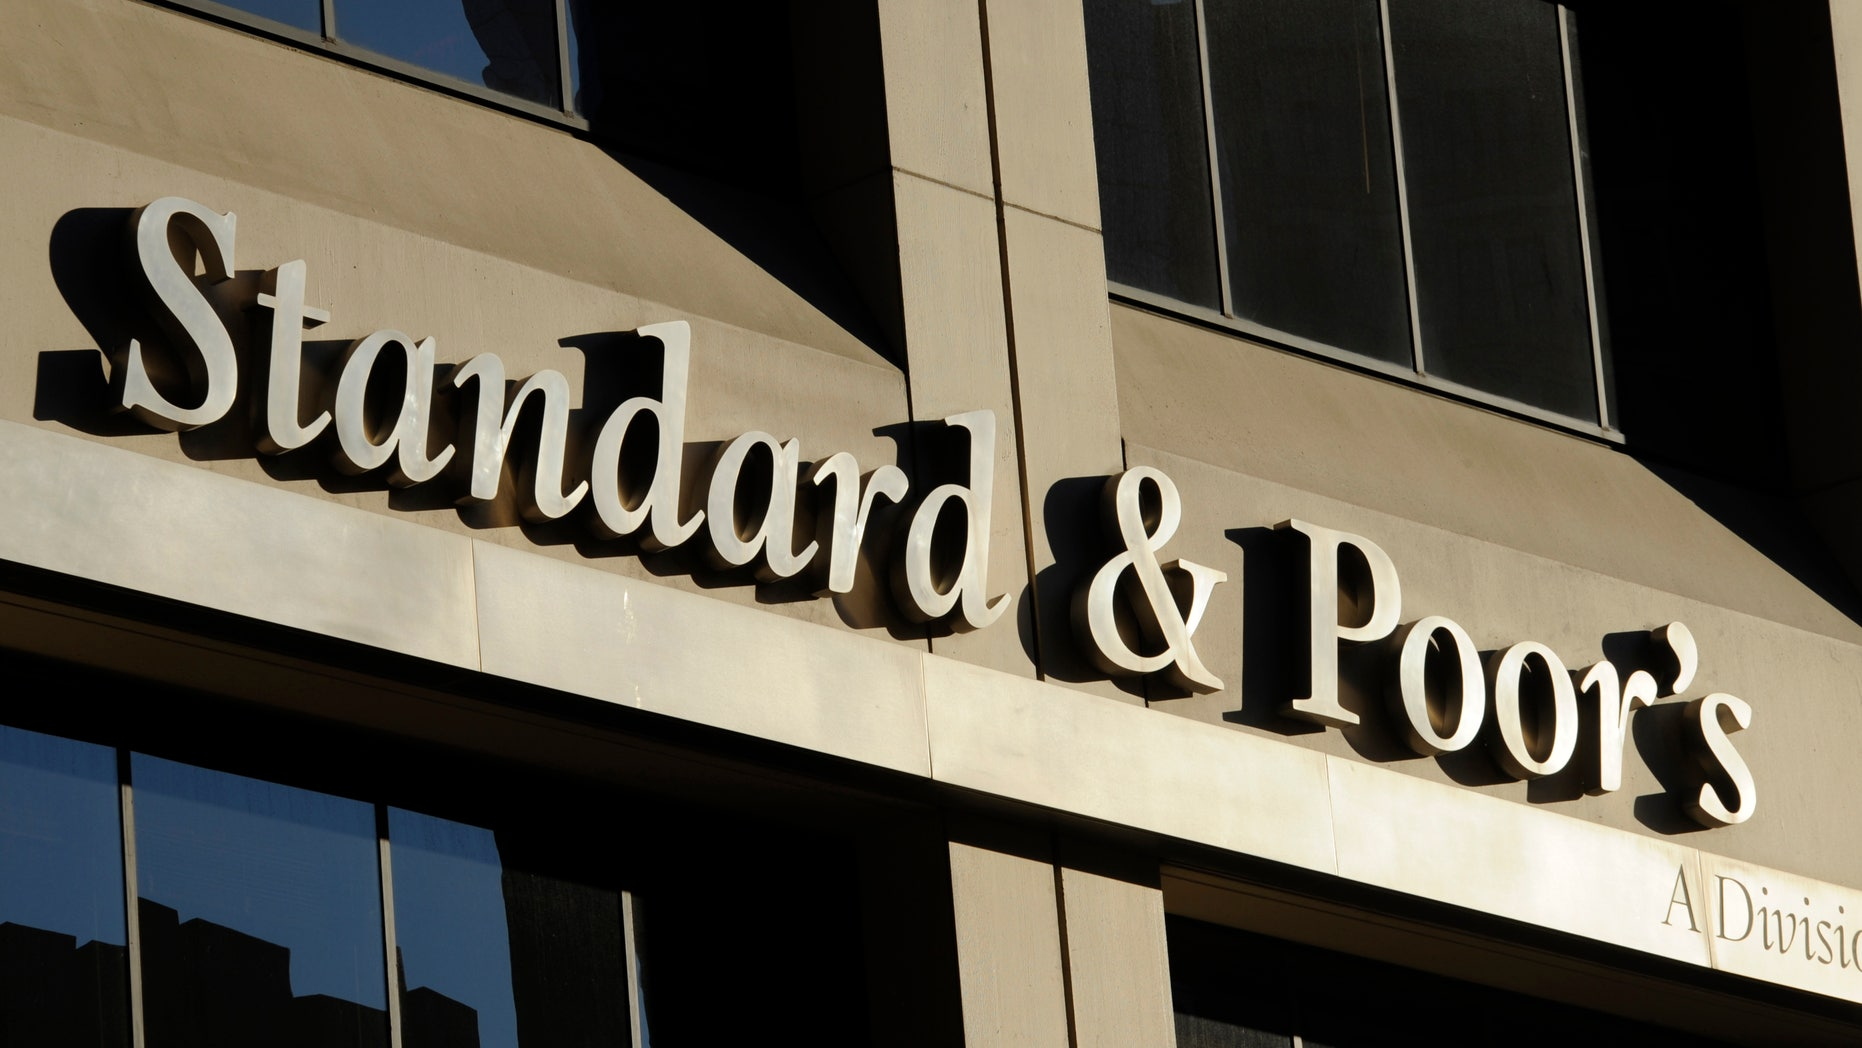 Oct. 9, 2011: File photo shows 55 Water Street, home of Standard & Poor's, in New York. S&P said Monday, Feb. 4, 2013, the U.S. government is expected to file civil charges against Standard & Poor's Ratings Services, alleging that it improperly gave high ratings to mortgage debt that later plunged in value and helped fuel the 2008 financial crisis.